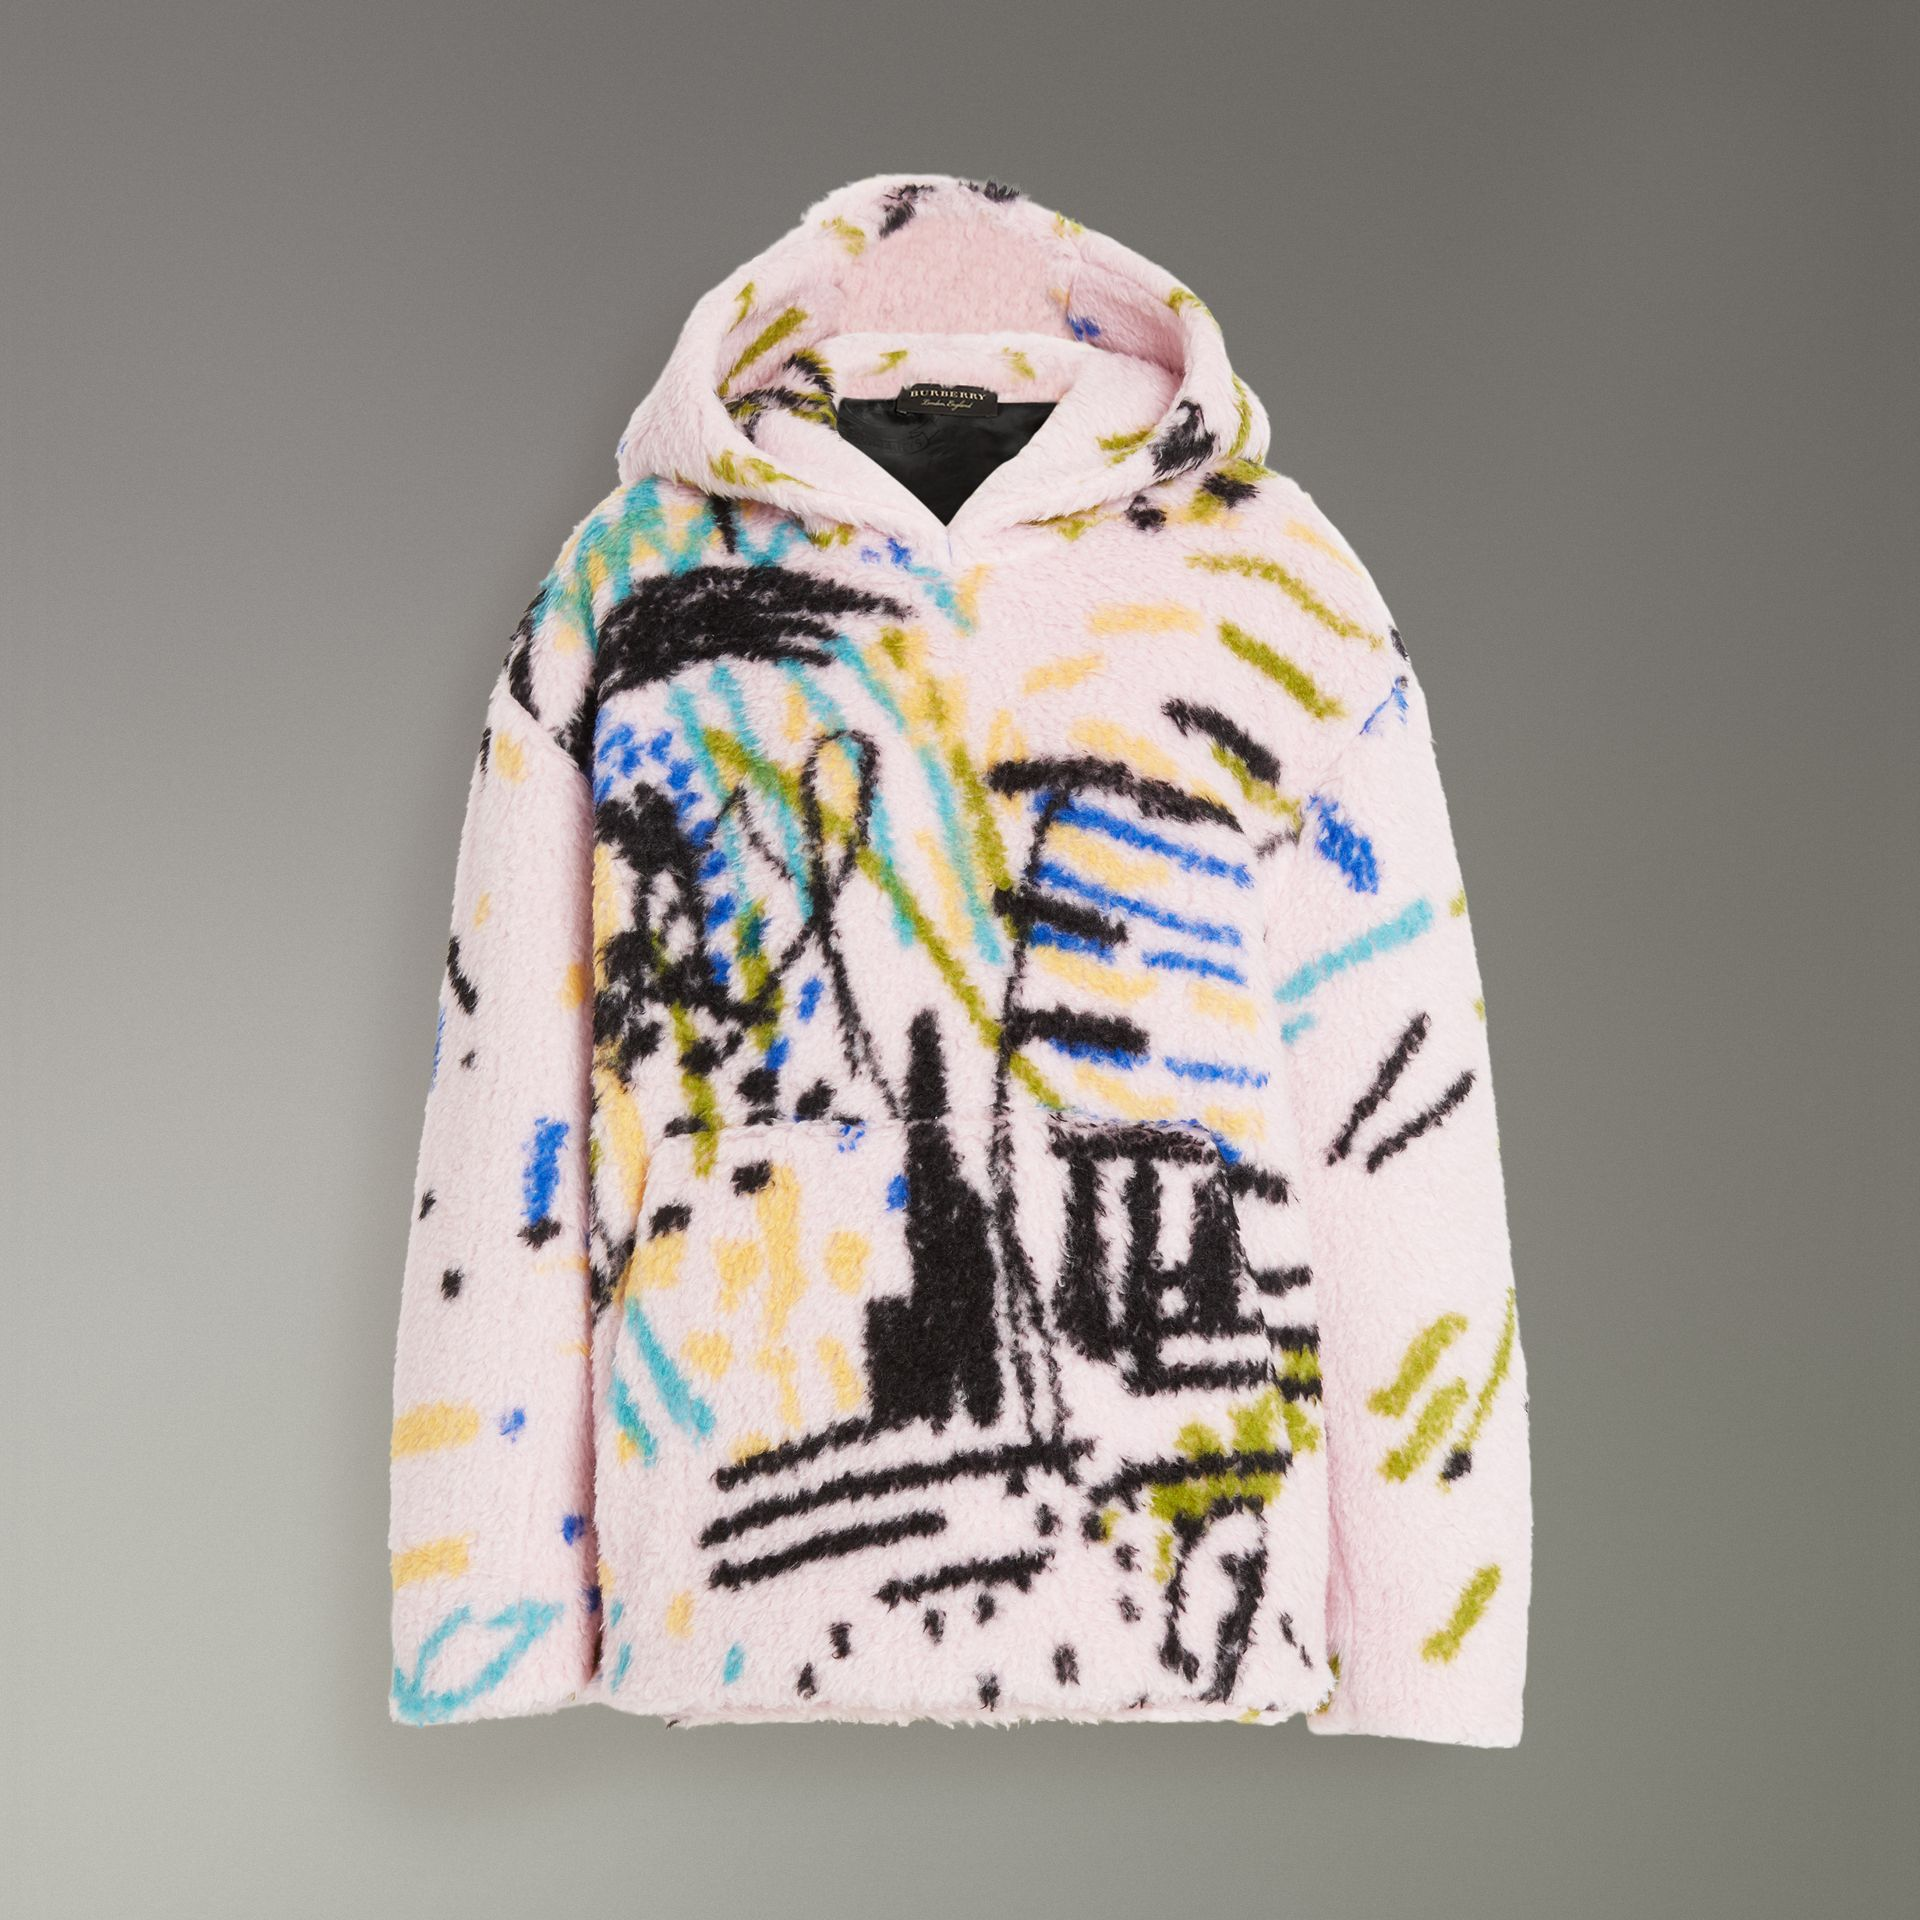 Graffiti Print Cashmere Silk Fleece Hoodie in Pale Rose - Women | Burberry Hong Kong - gallery image 3